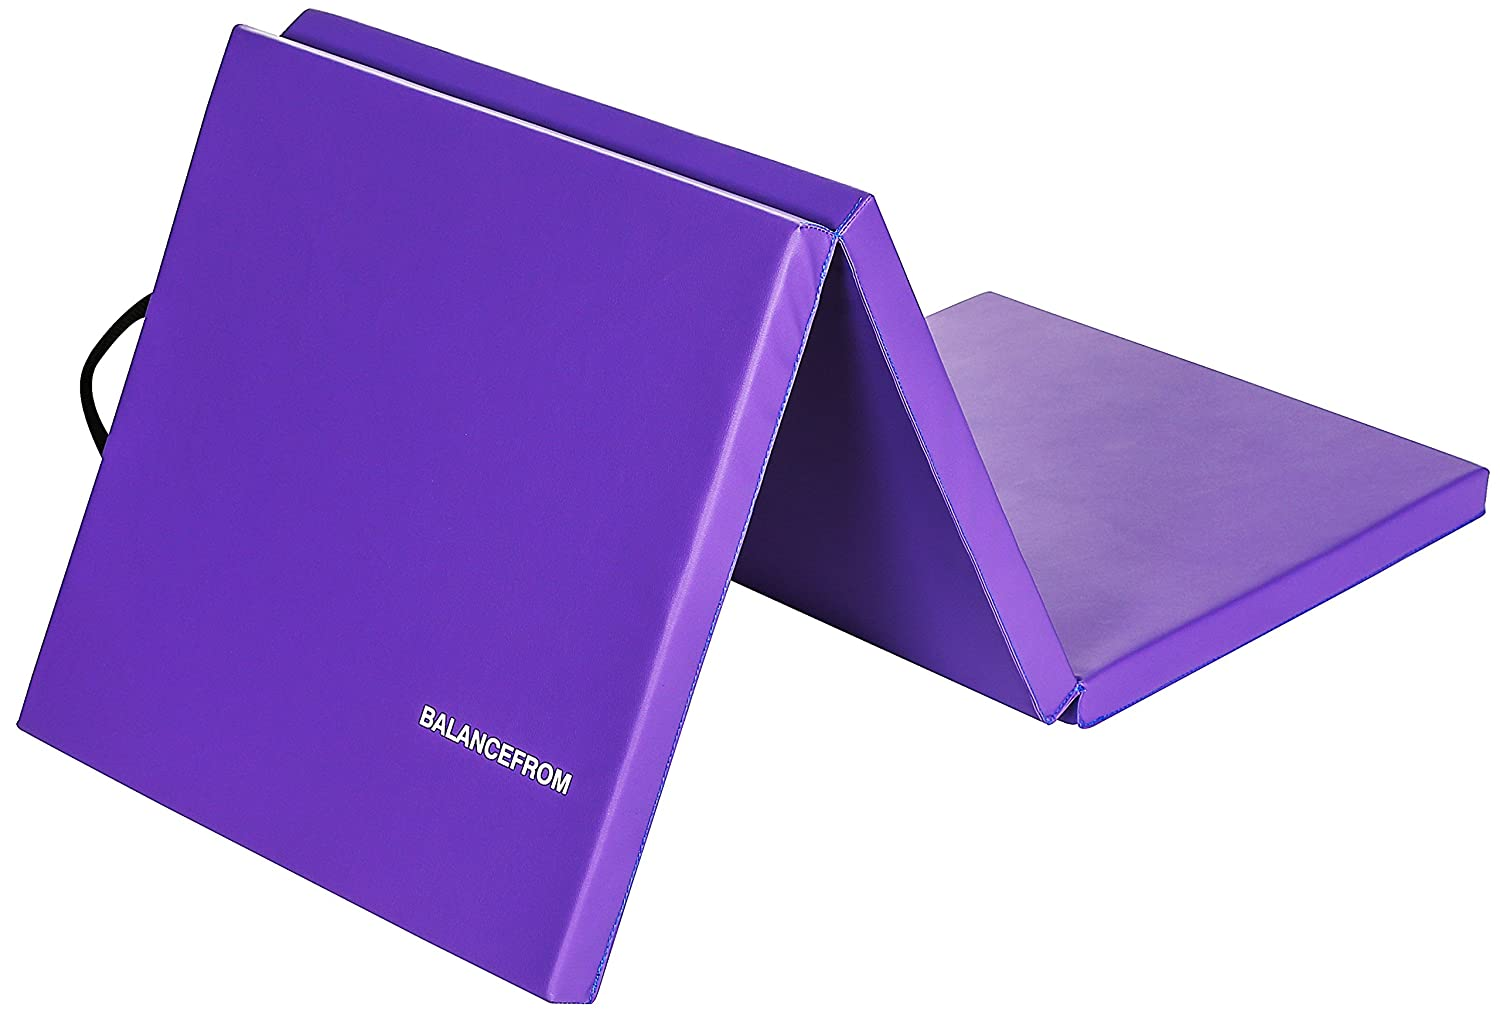 """BalanceFrom 2"""" Thick Tri-Fold Folding Exercise Mat with Carrying Handles for MMA, Gymnastics and Home Gym Protective Flooring"""